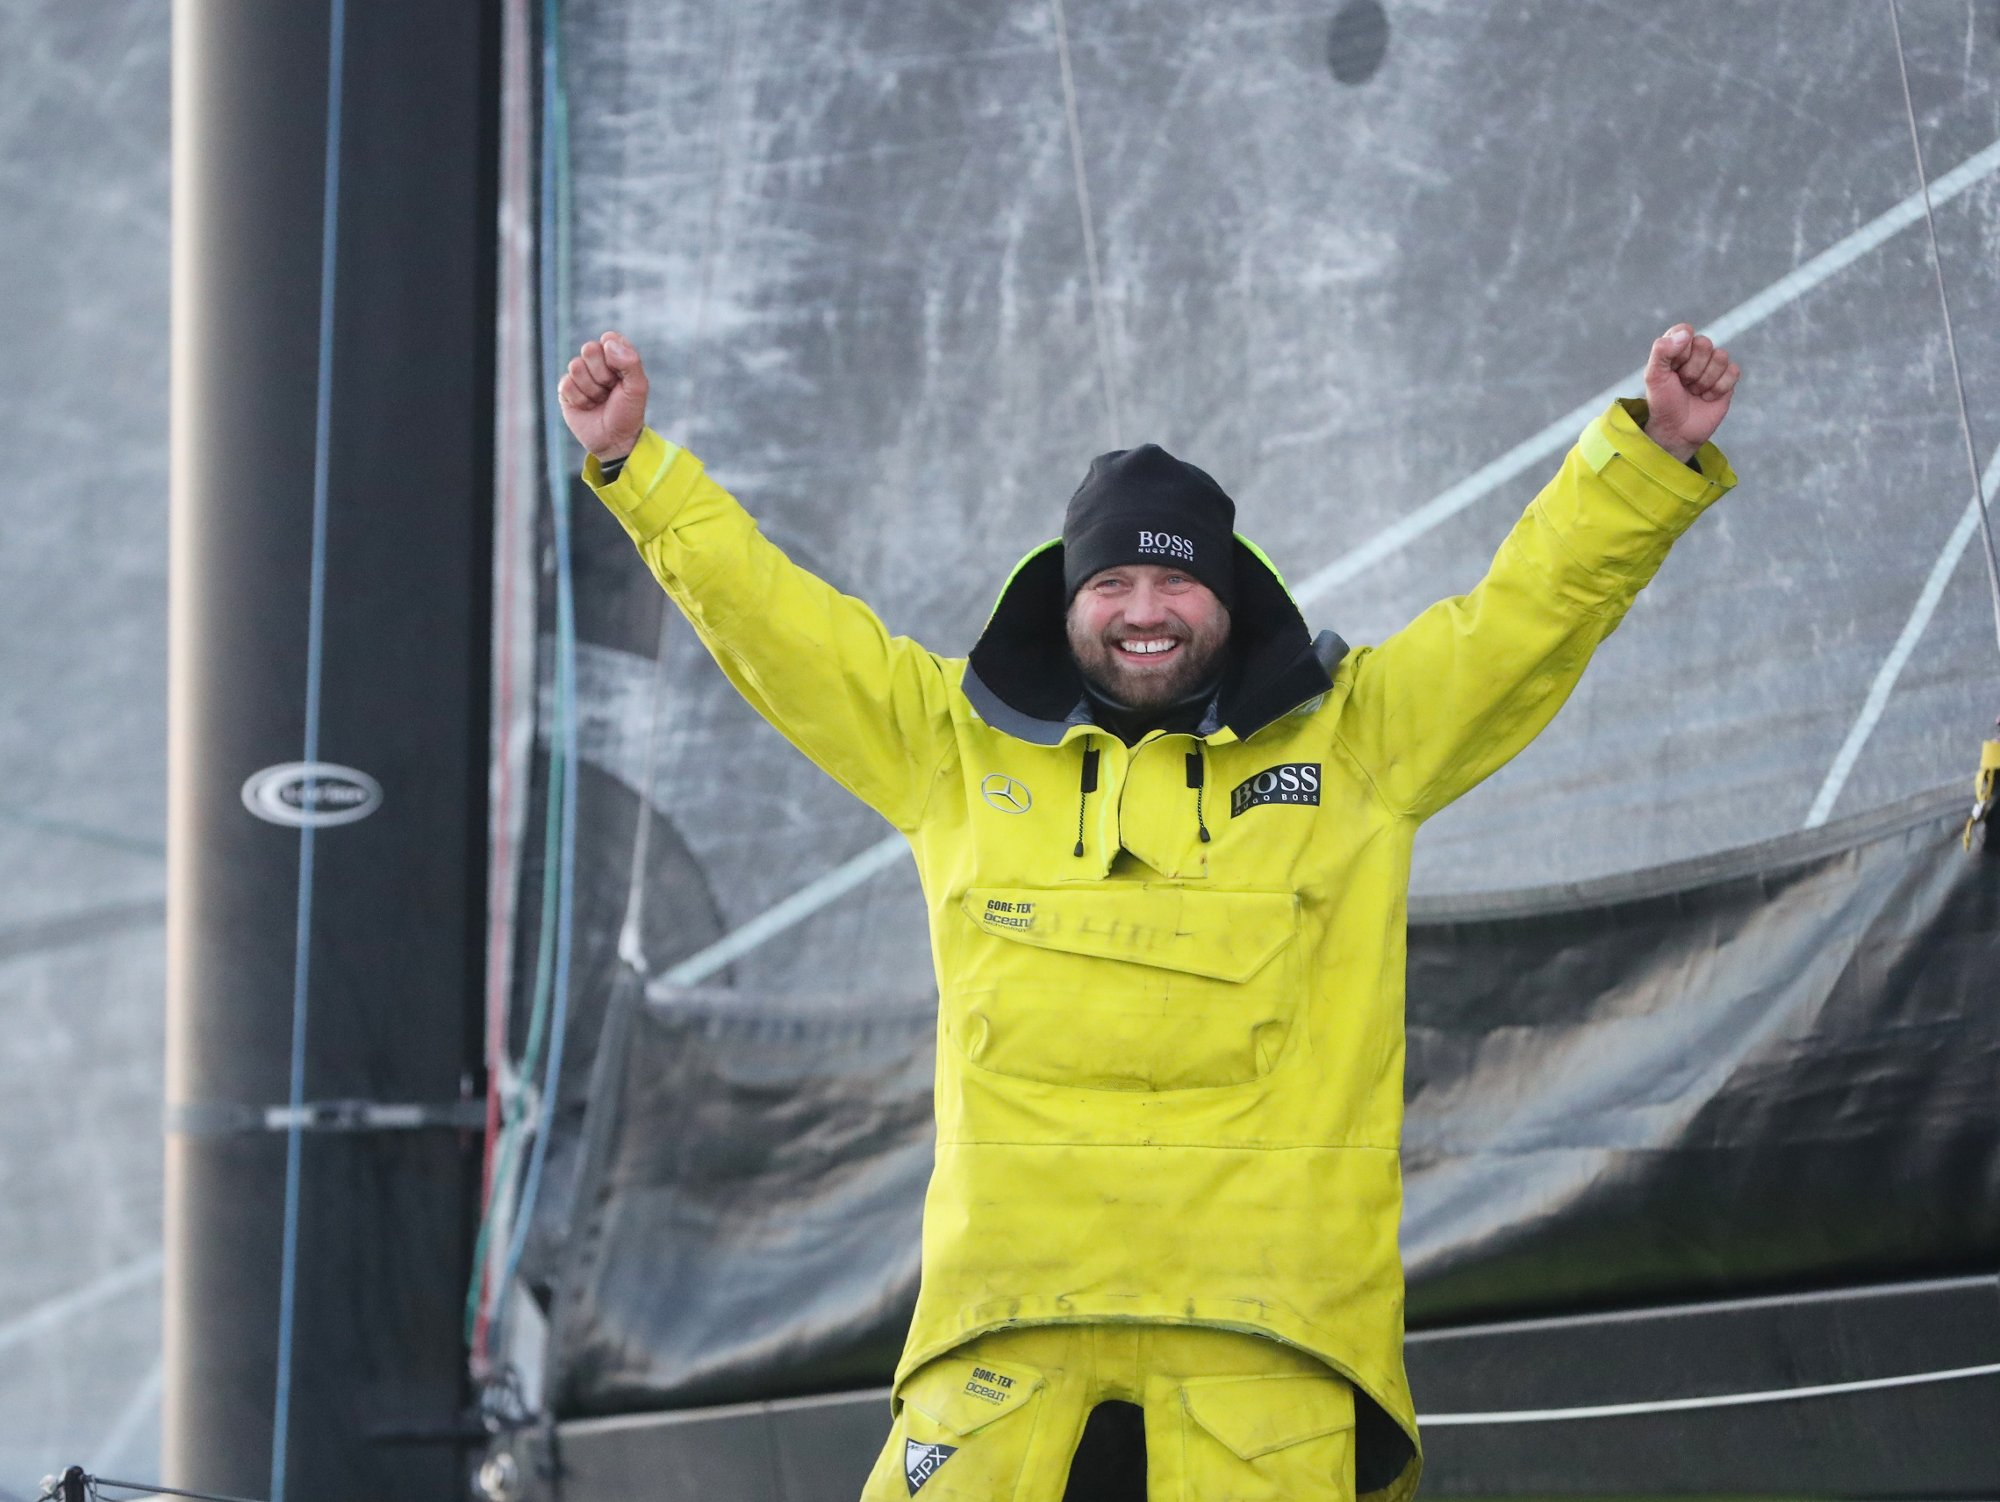 Alex Thomson wearing a yellow sailing jacket by BOSS